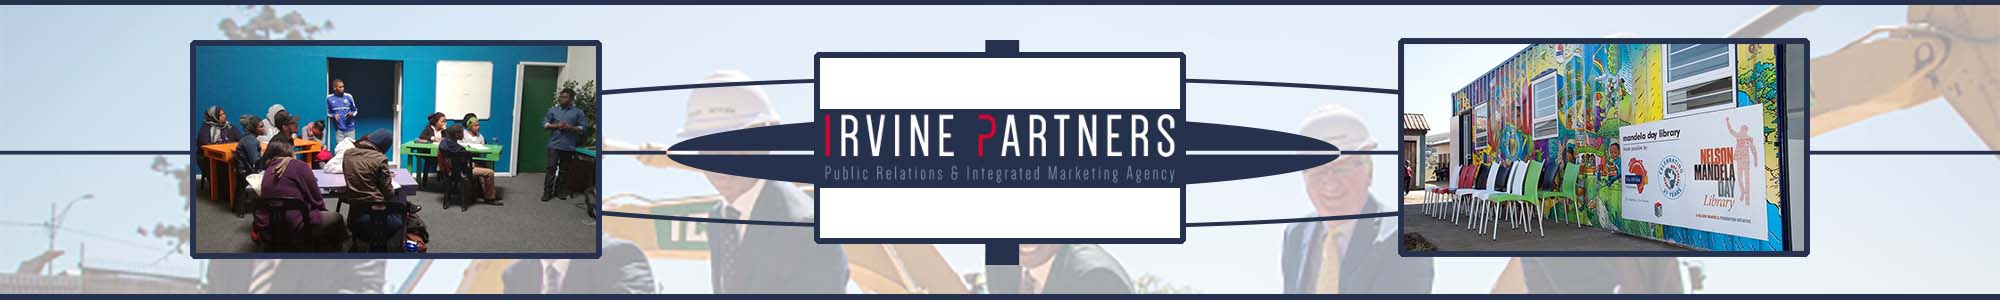 Irvine Partners Public Relations & Integrated Communications Agency